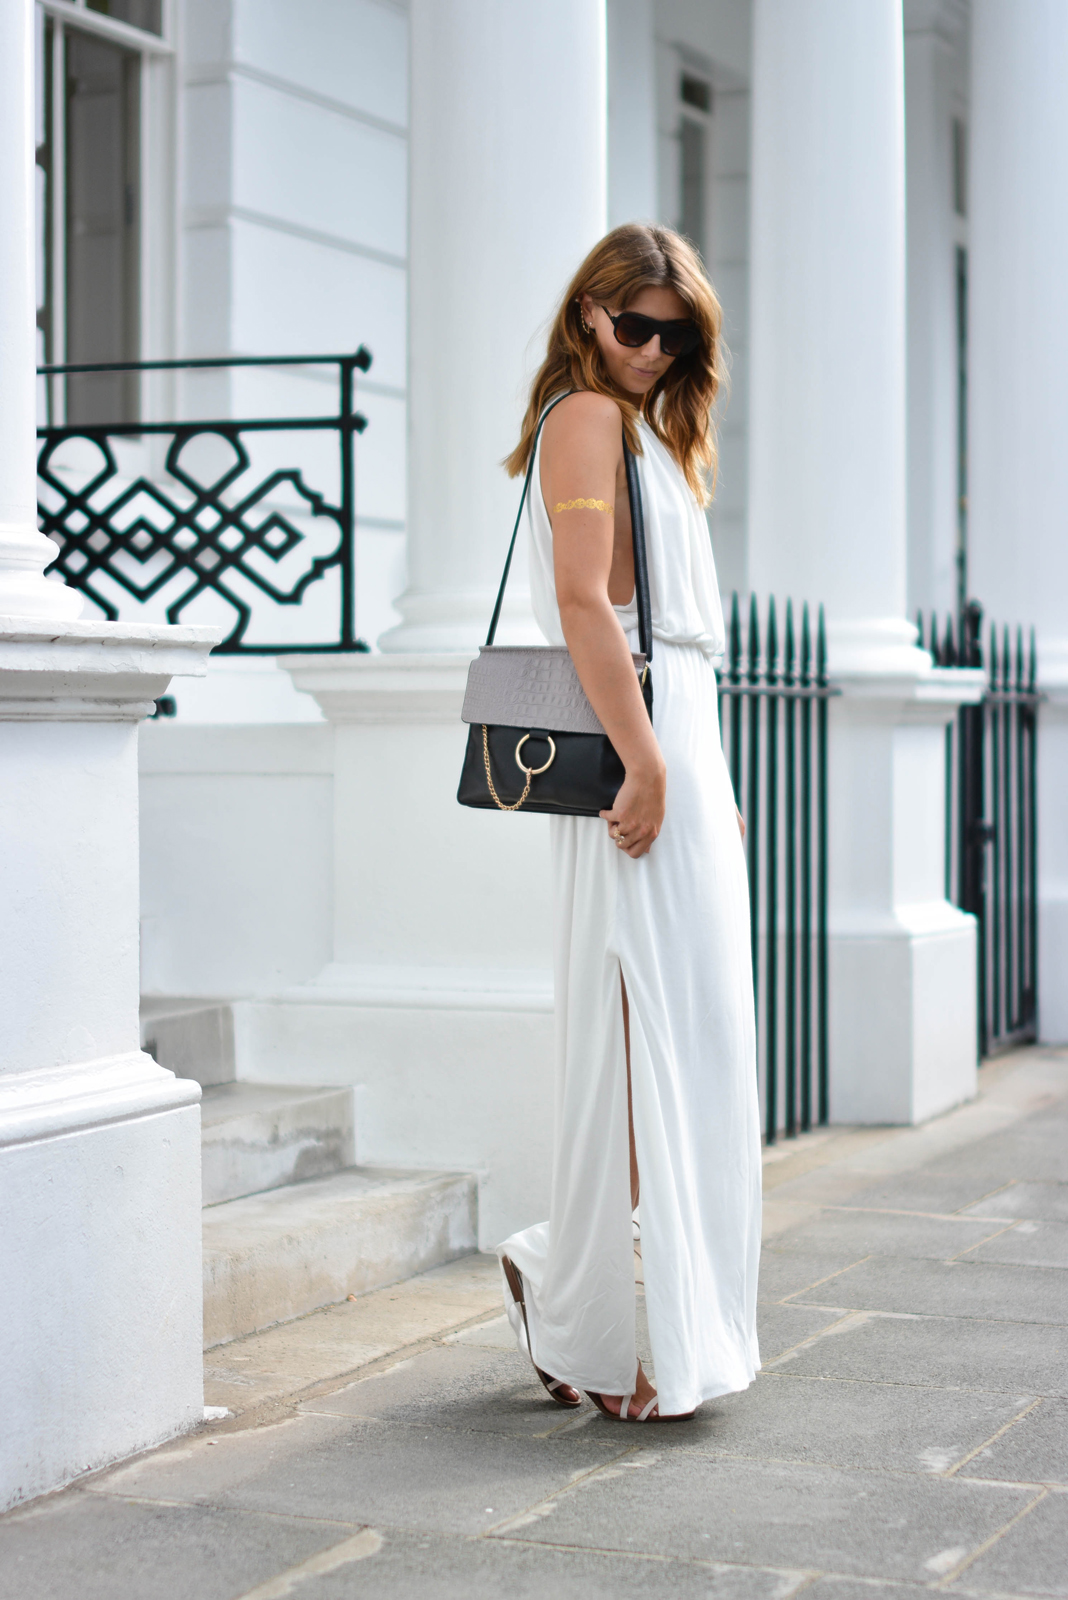 EJSTYLE - Melissa Odabash Rachel white grecian dress, gold chain and pearl ear cuff, Chloe Faye bag, gold flash arm tattoo